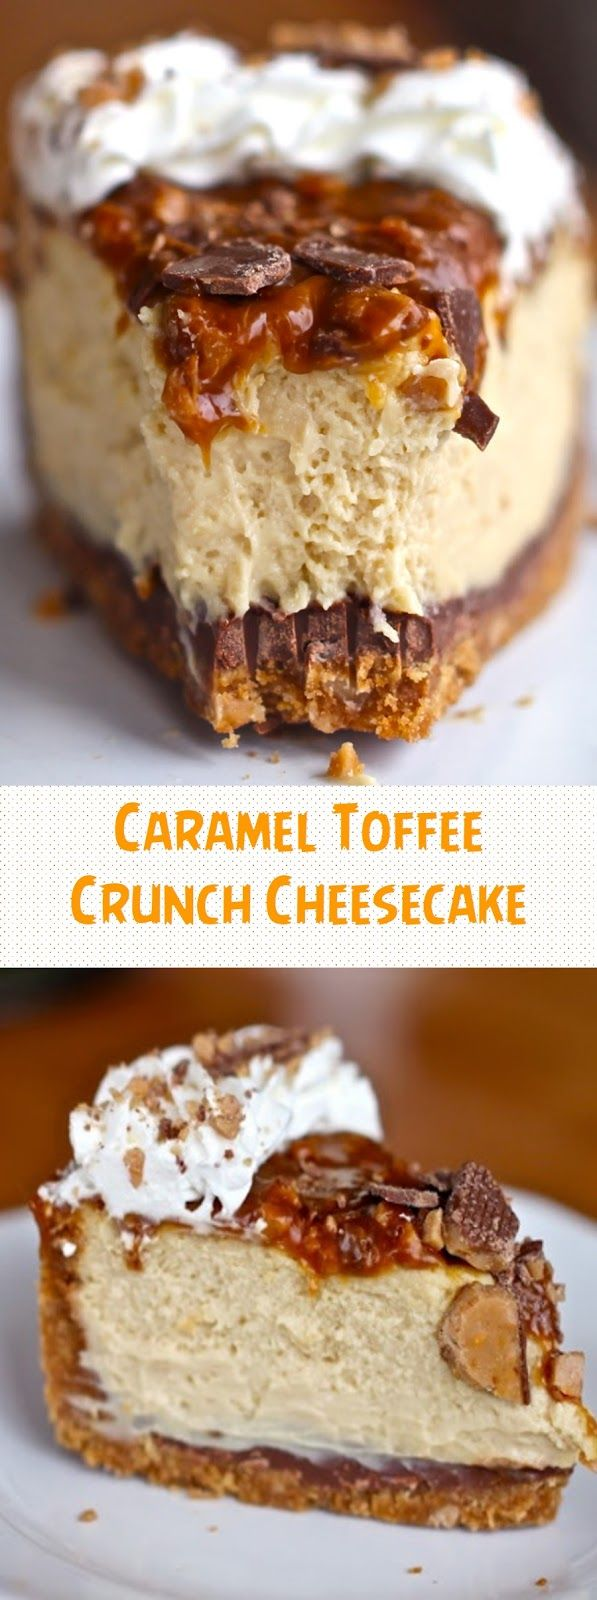 Photo of Caramel Toffee Crunch Cheesecake #cheesecake #toffee